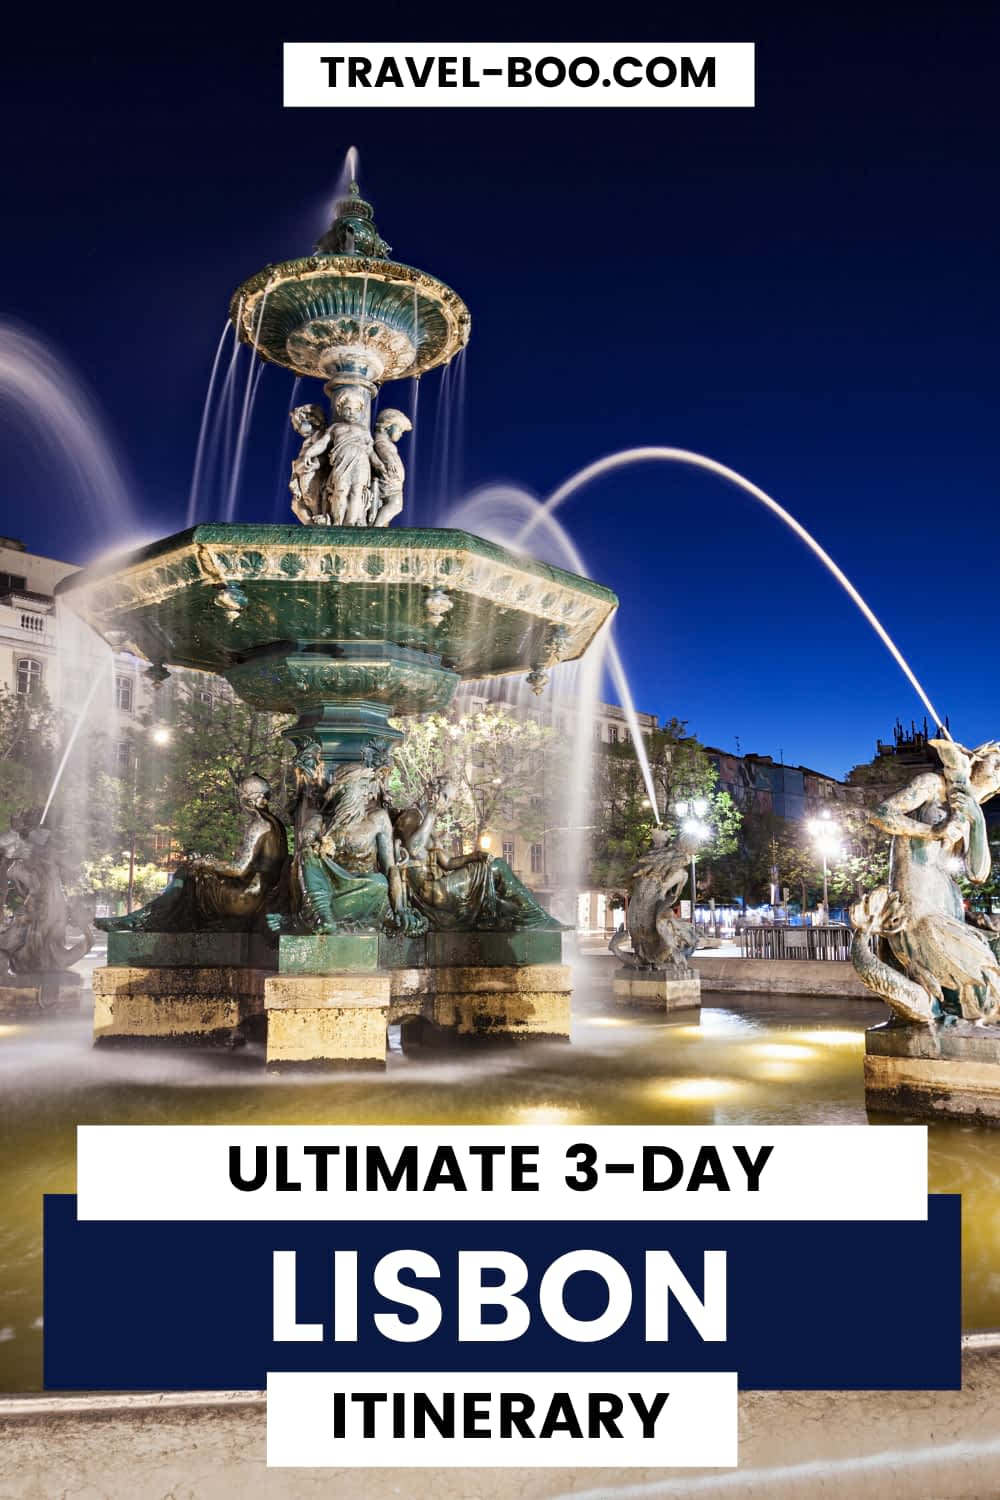 Ultimate 3 Day Lisbon Itinerary. Visiting Lisbon for 3-days? Check out our guide on what to see and do during your 3 day stay! #lisbontravel #lisbonportugal #lisbontravelguide | Lisbon Travel Guide | Lisbon Itinerary | Lisbon Travel Things to do | Lisbon Things to do | Lisbon Travel Tips | Portugal Travel Guides | Portugal Travel Tips